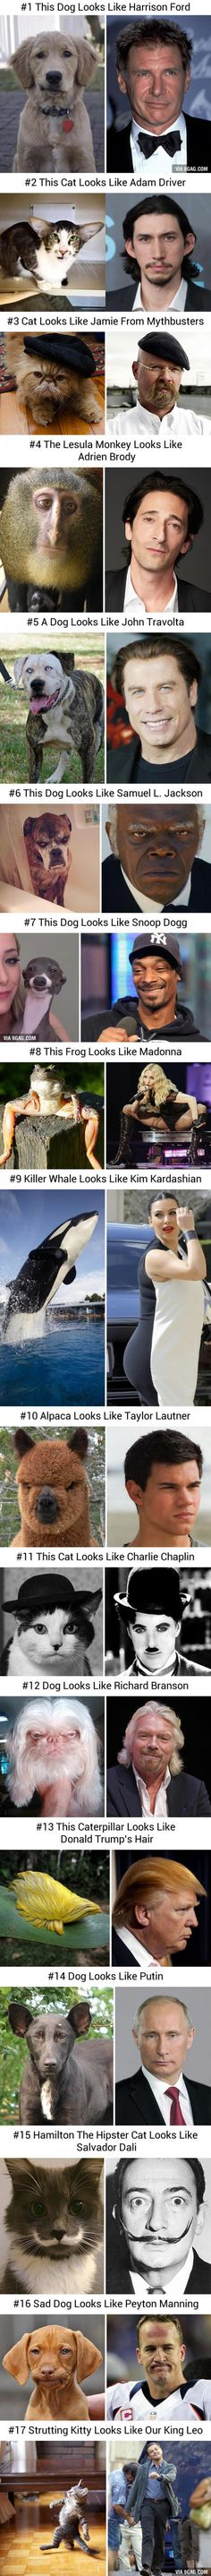 17 Best Look Like Pictures you ever seen: Animals vs Celebrities and Famous People - funny photo hilarious Animal Jokes, Funny Animal Memes, Cute Funny Animals, Funny Animal Pictures, Funny Cute, Funny Photos, The Funny, Funny Jokes, Hilarious Quotes